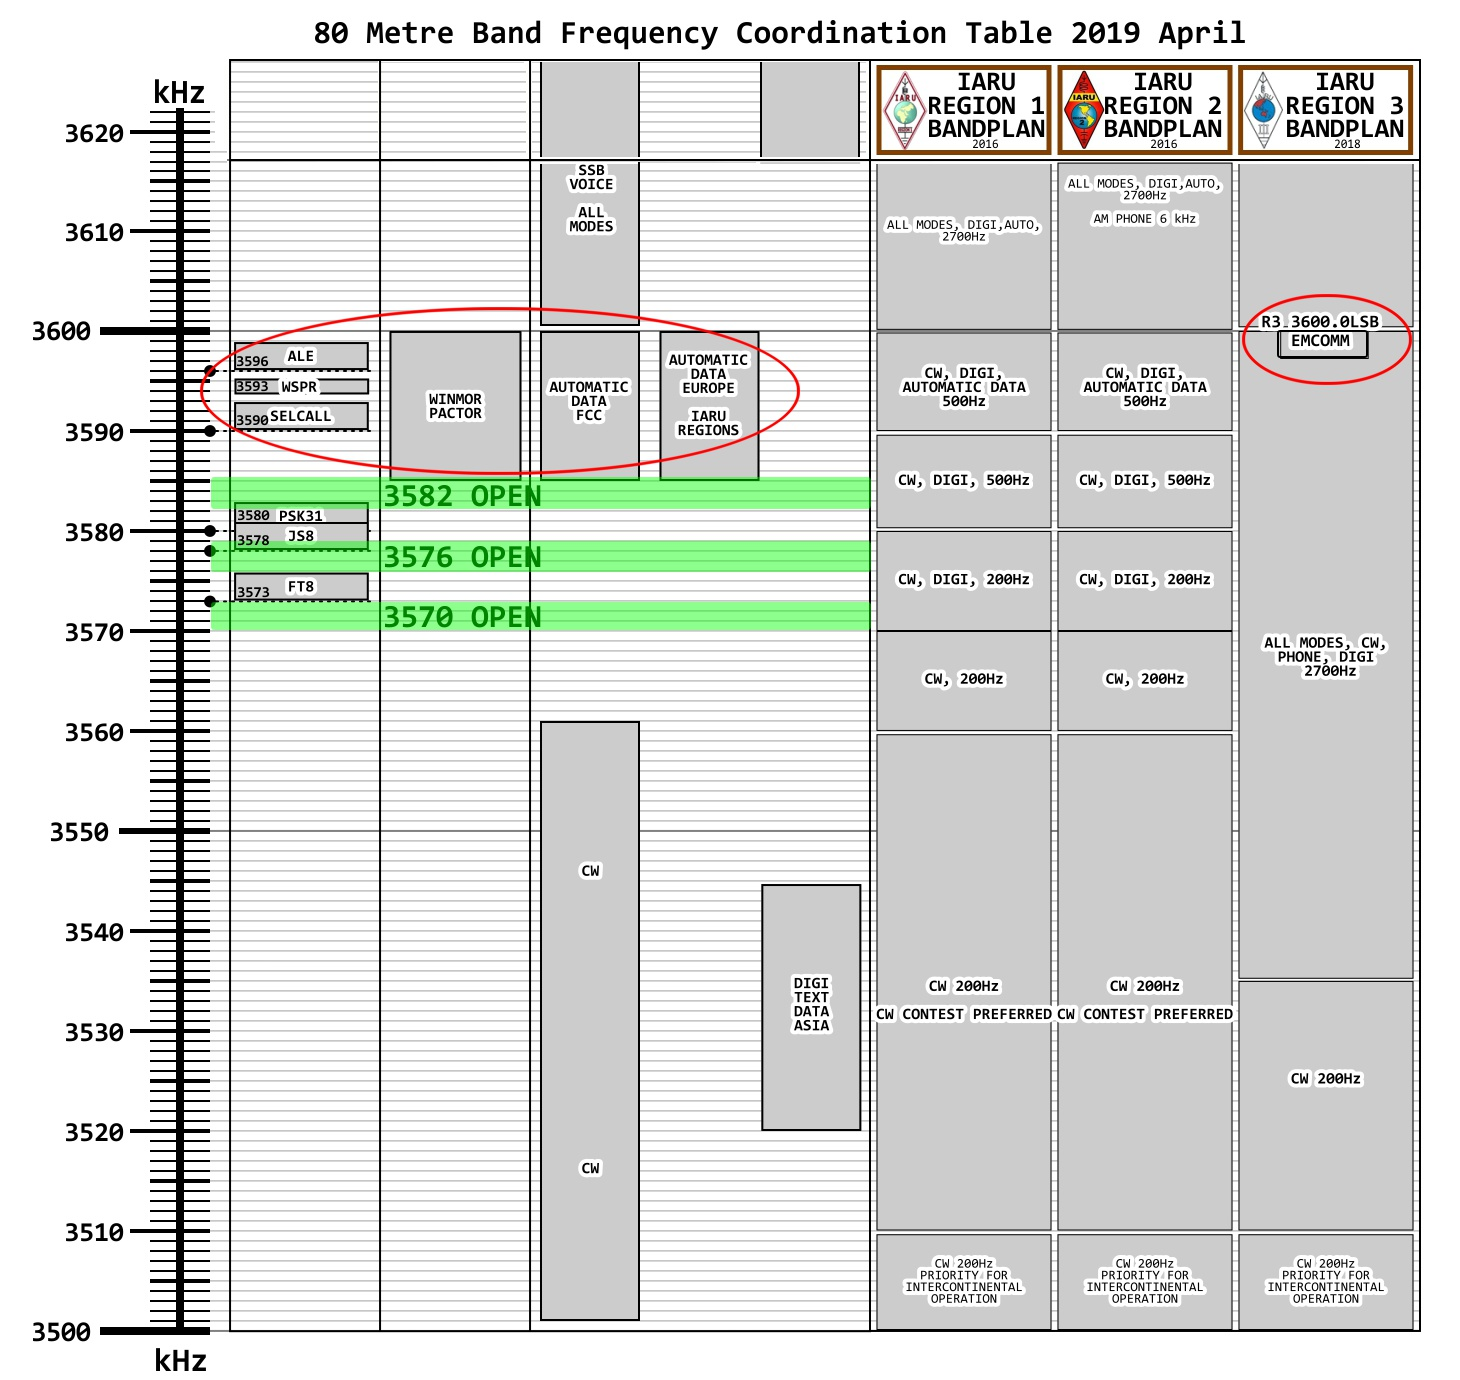 FT4 Frequency Coordination 80 Metre Band